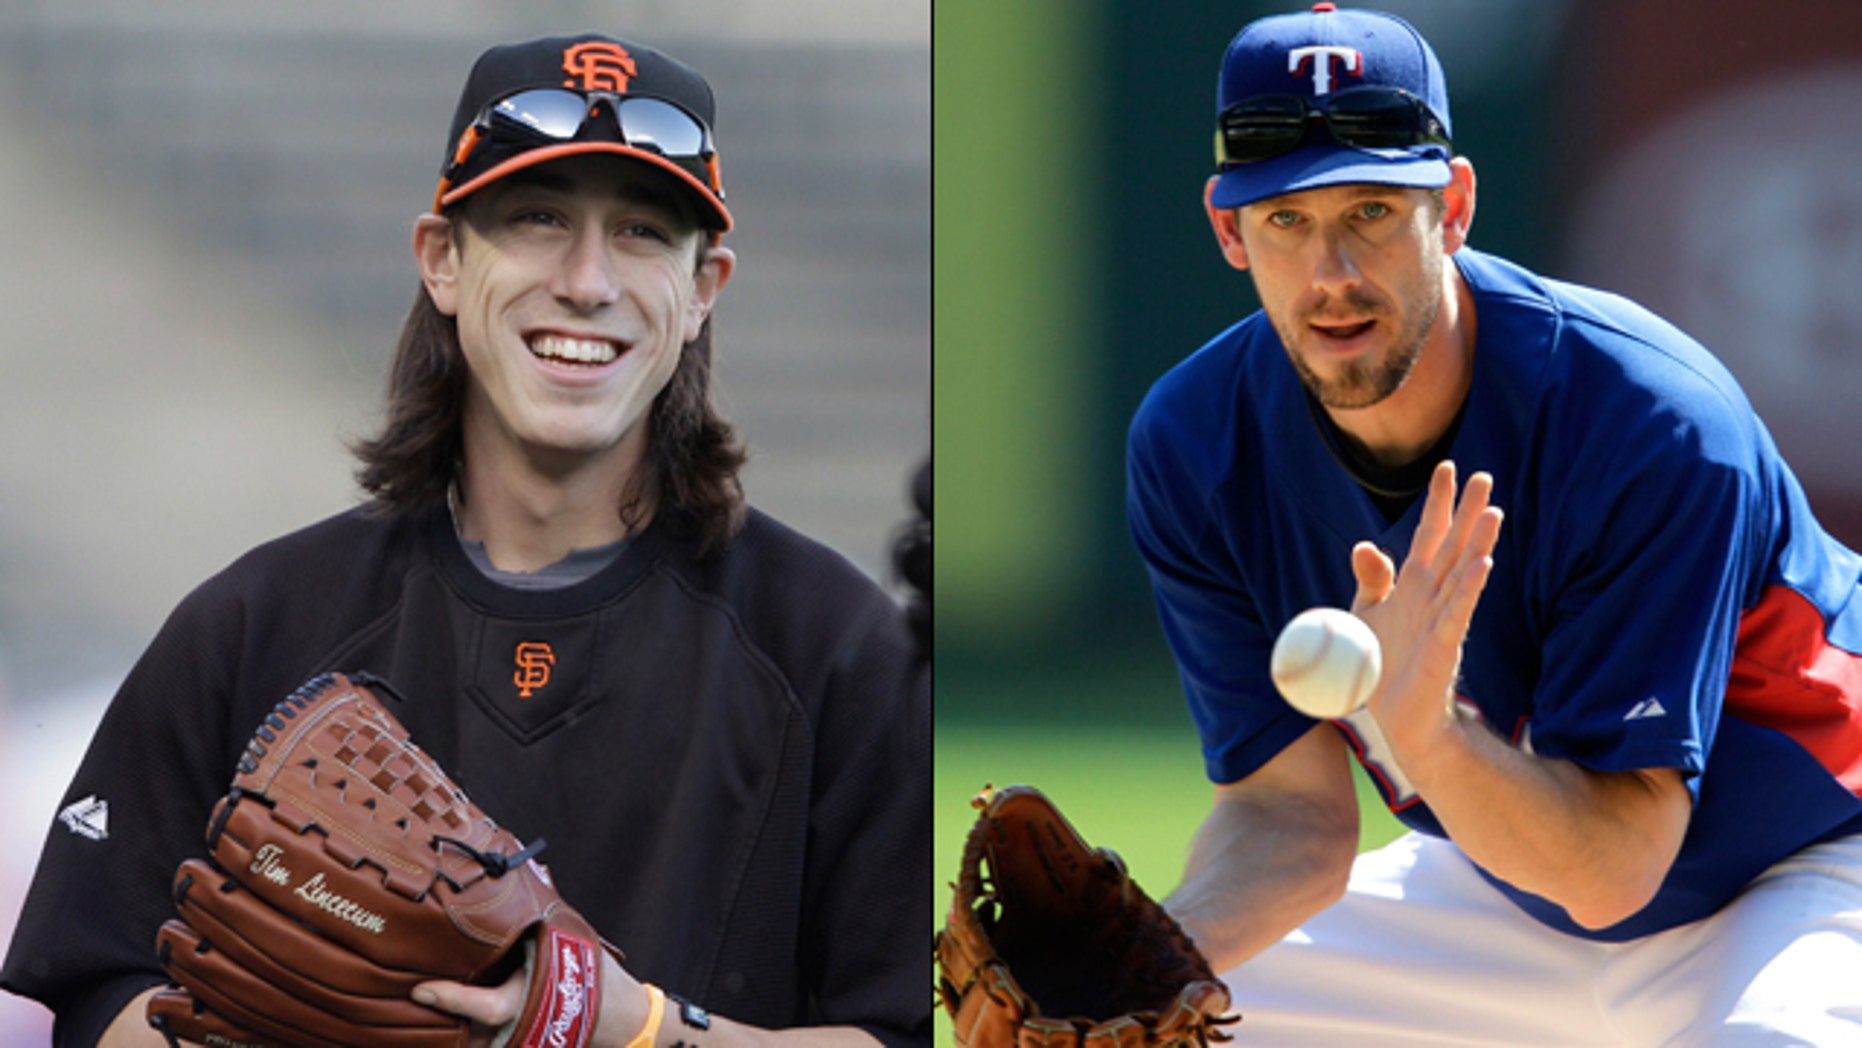 Tim Lincecum of the San Francisco Giants, left, faces Cliff Lee of the Texas Rangers in Game 1 of the World Series.